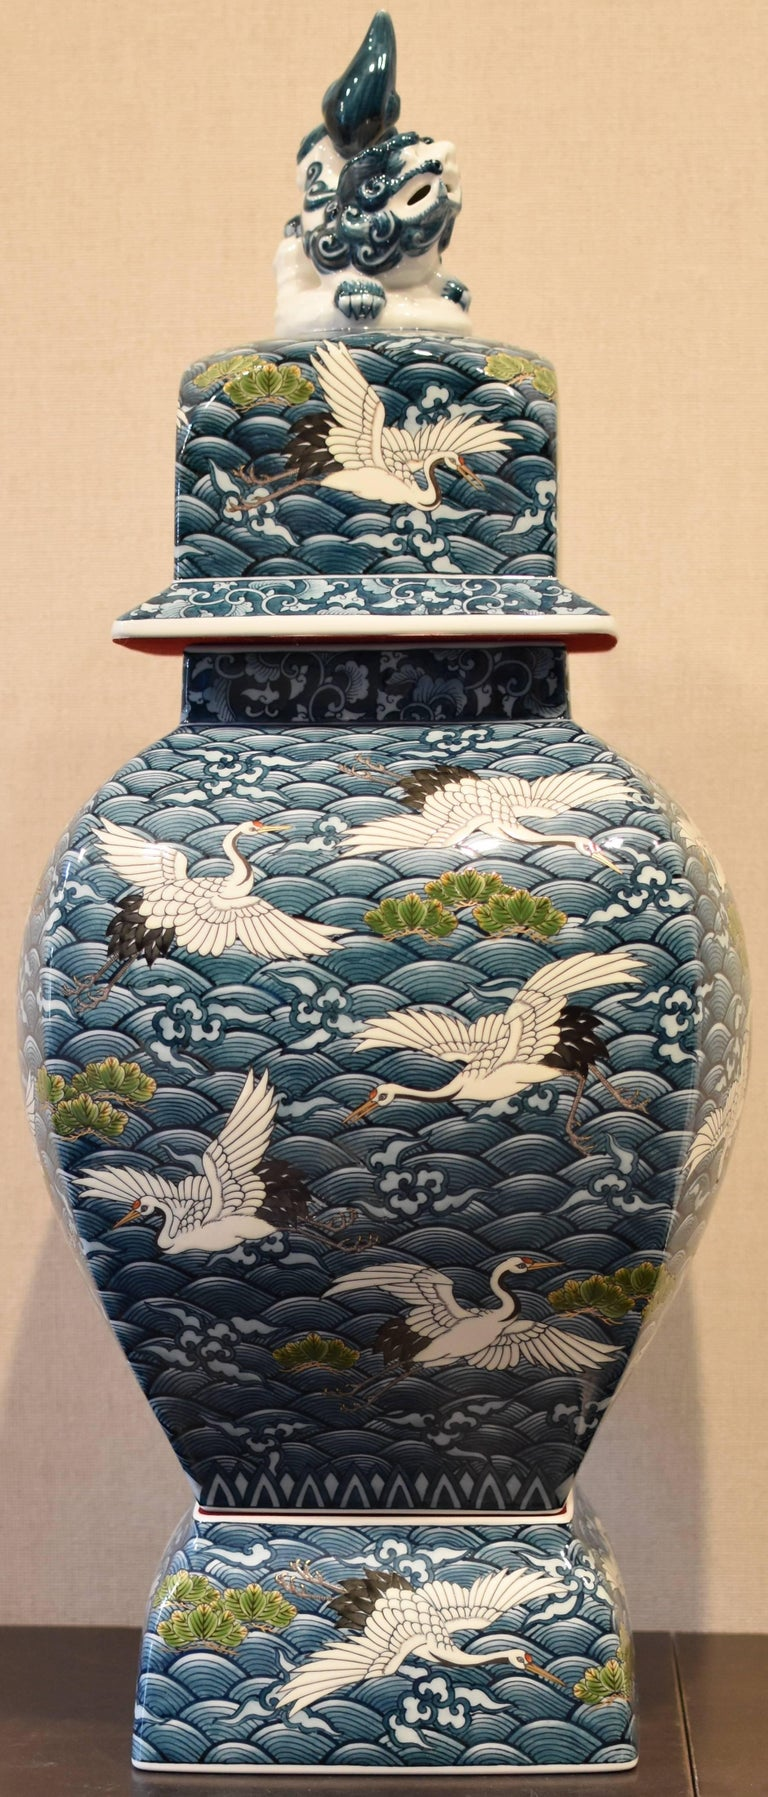 Unique extraordinary three-piece lidded Imari Porcelain temple jar, a contemporary masterpiece by highly acclaimed award-winning Japanese master porcelain artist of the Imari-Arita region of Japan.